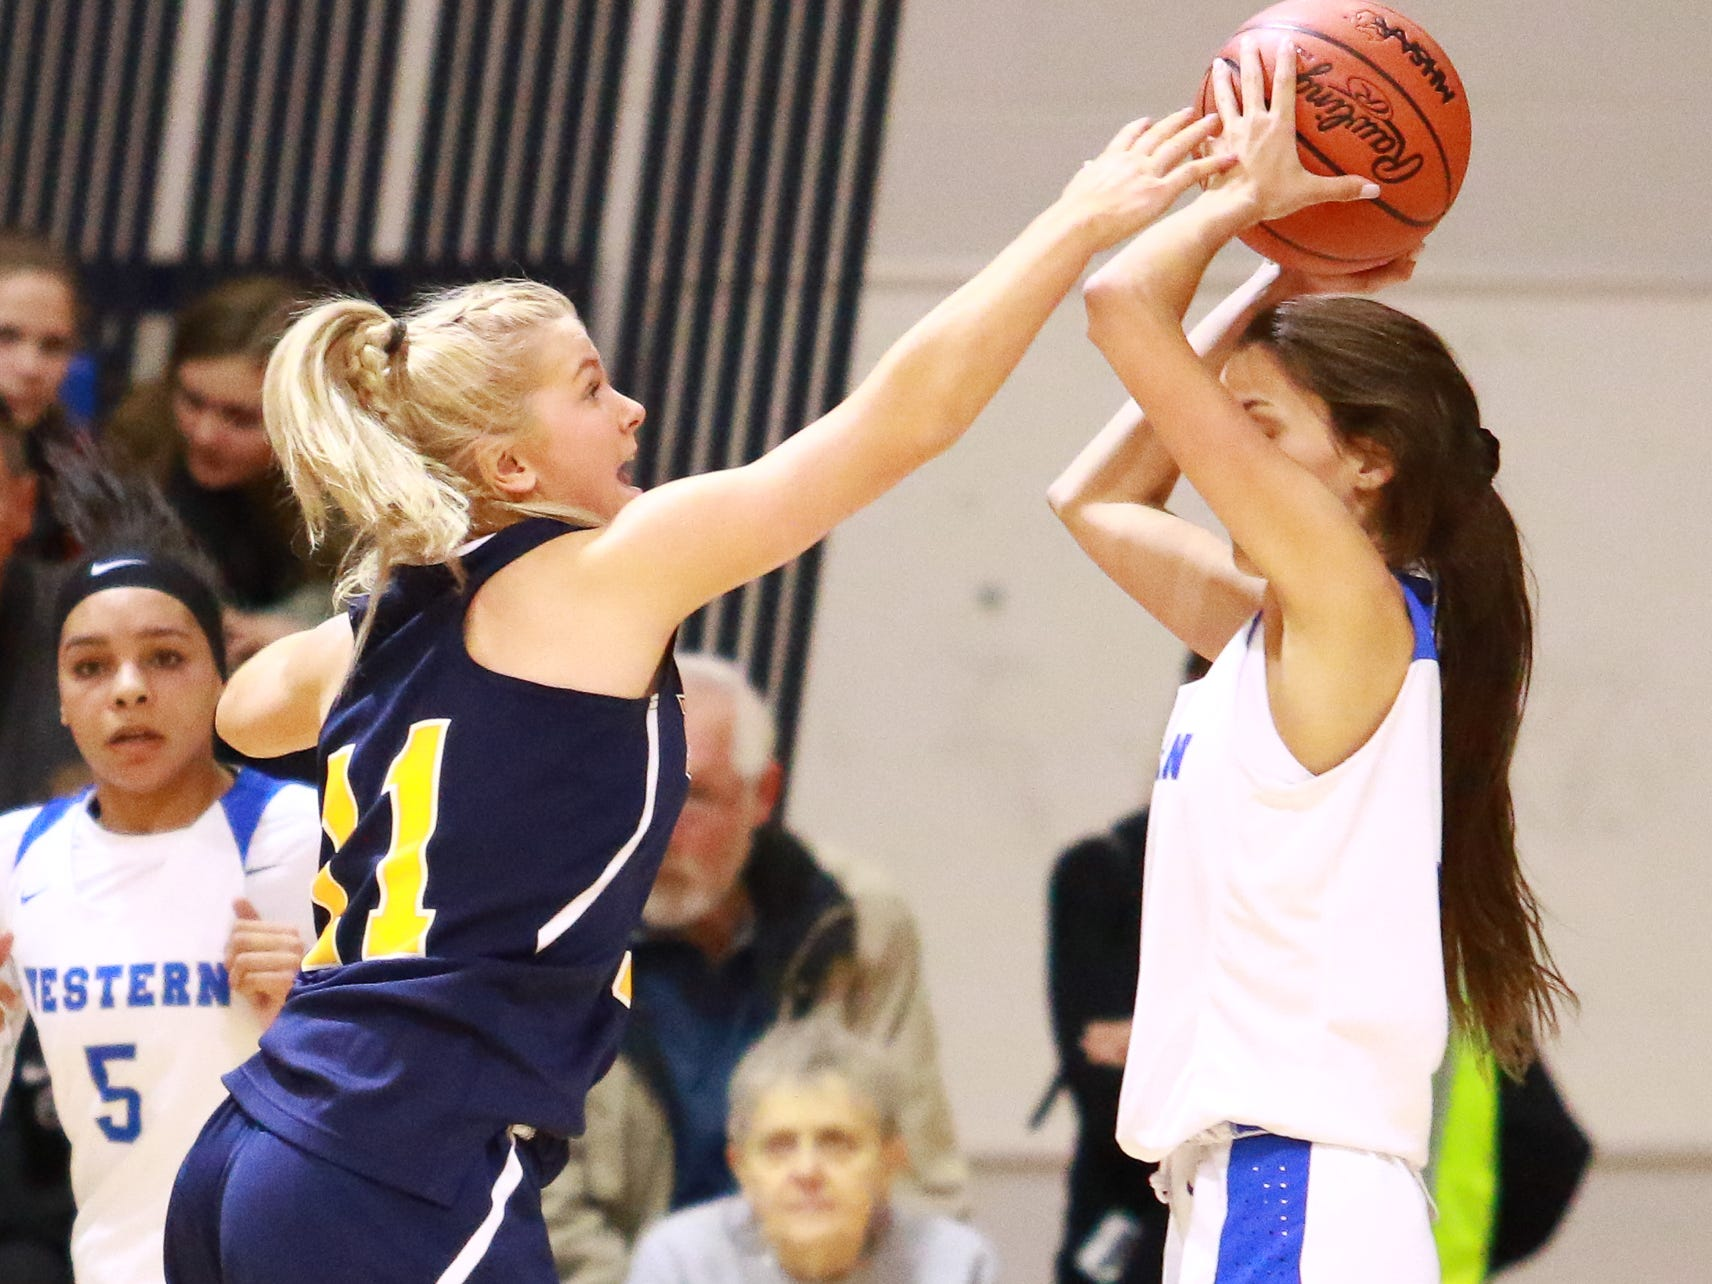 Hartland's Amanda Roach plays defense in a 50-46 victory over Walled Lake Western in a regional championship basketball game at Lakeland on Wednesday, March 13, 2019.